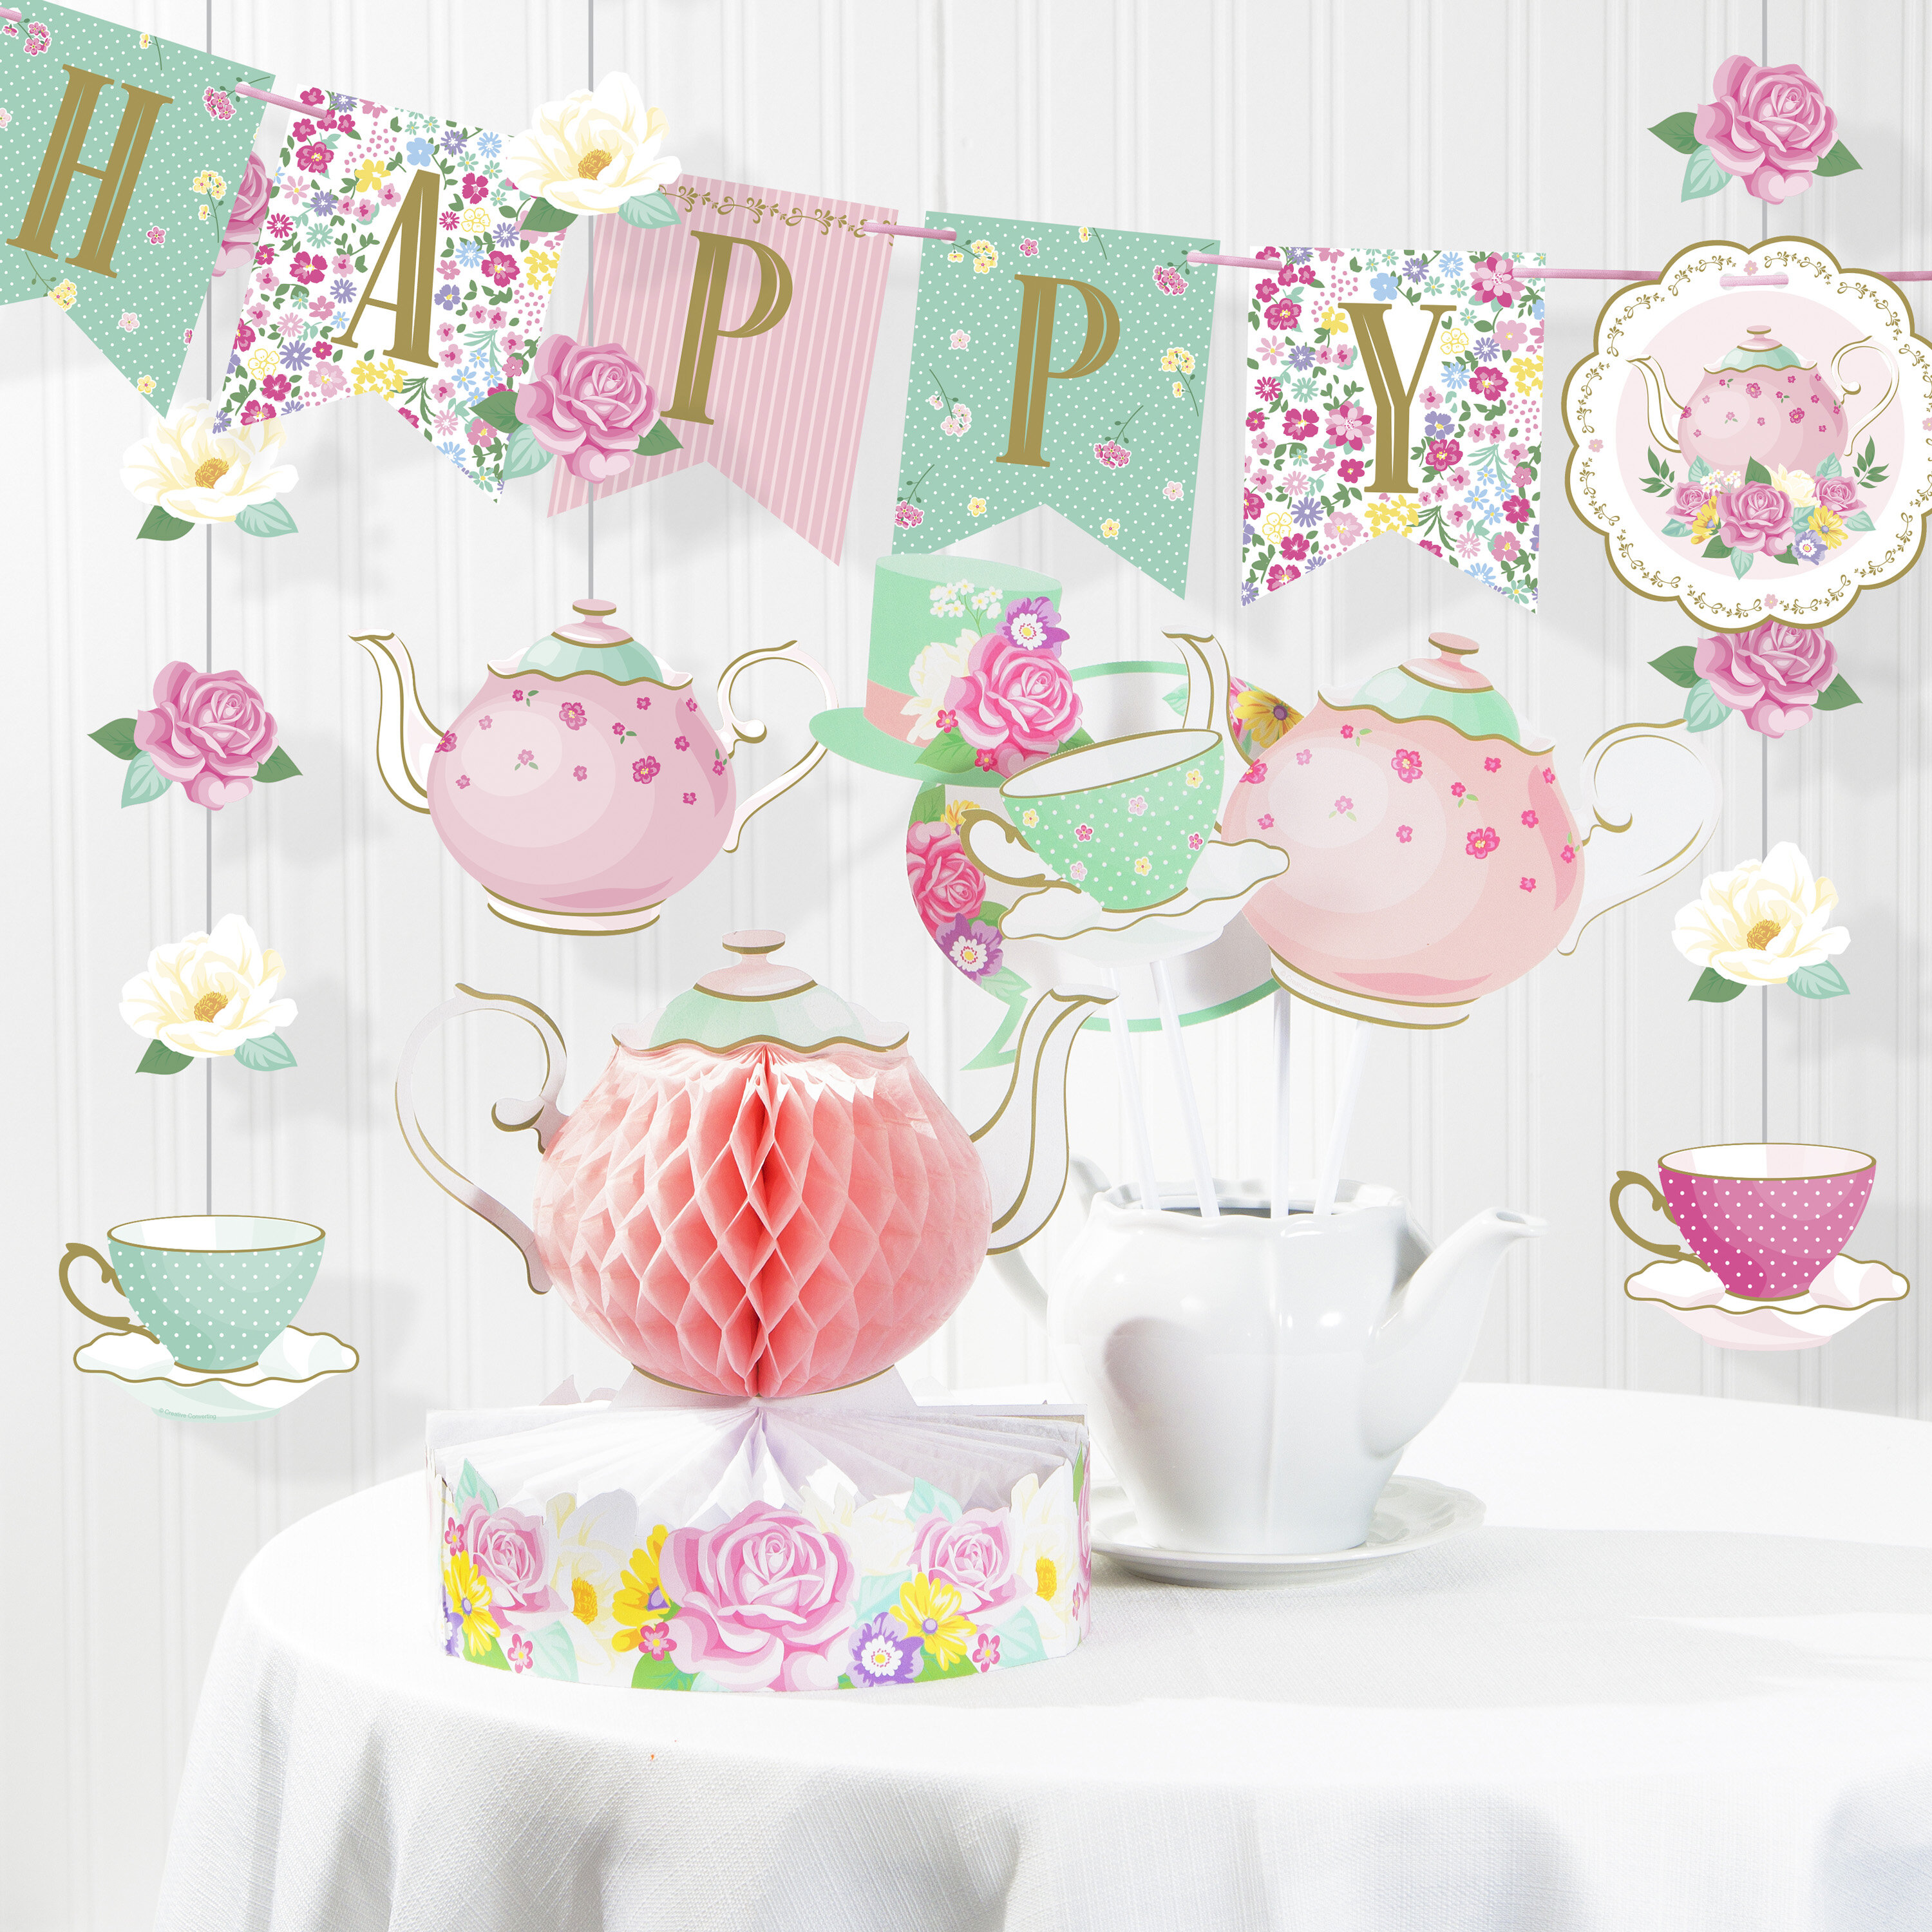 ROSE GOLD Plates Cups Table Cloth Decorations Shiny Disposable Birthday Party